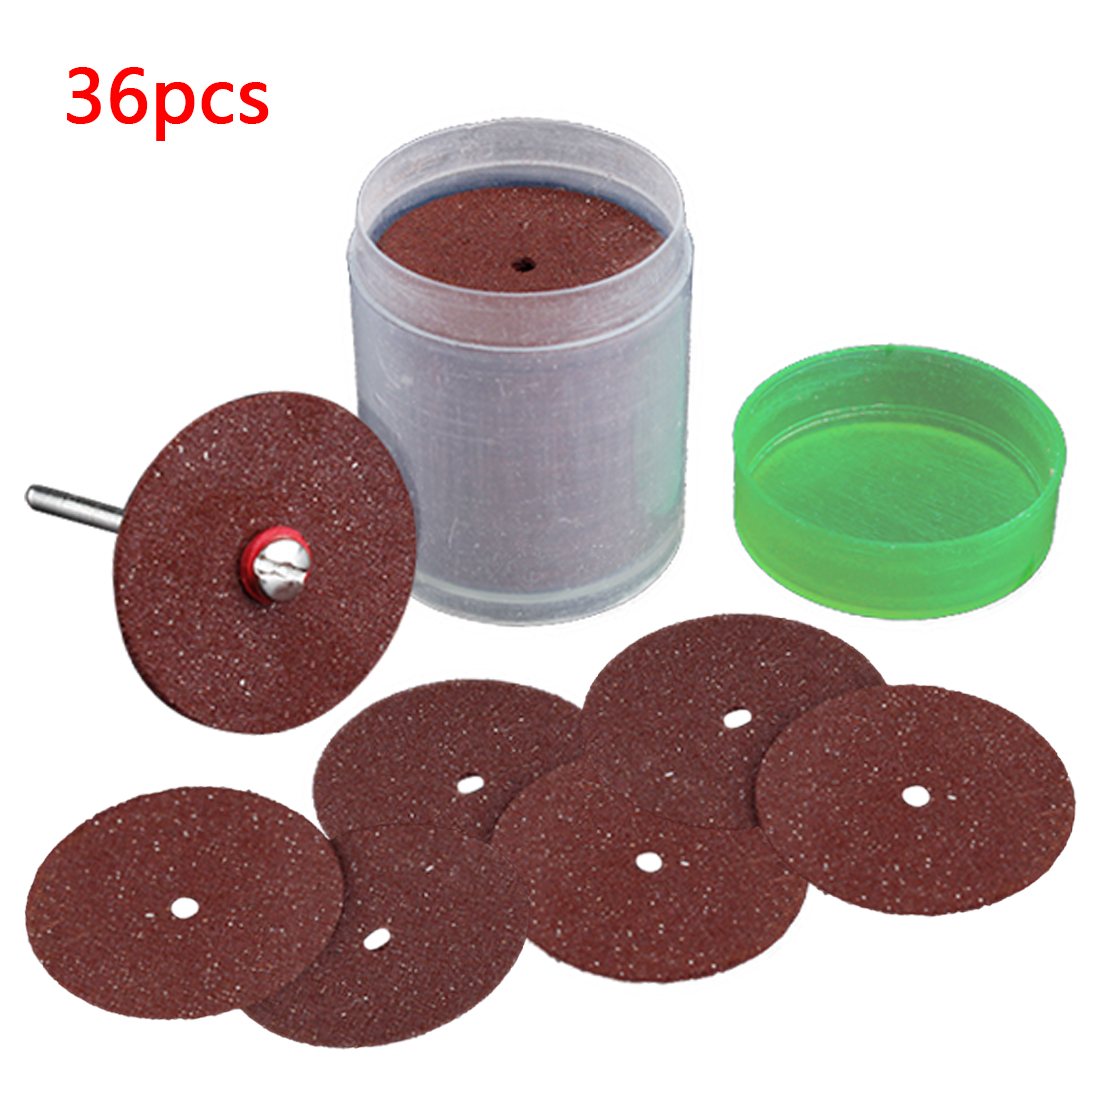 Abrasive Sanding Disc Tools 36Pcs Cutting Disc Circular Saw Blade Grinding Wheel For Dremel Rotary Tool Cutting Wood Metal